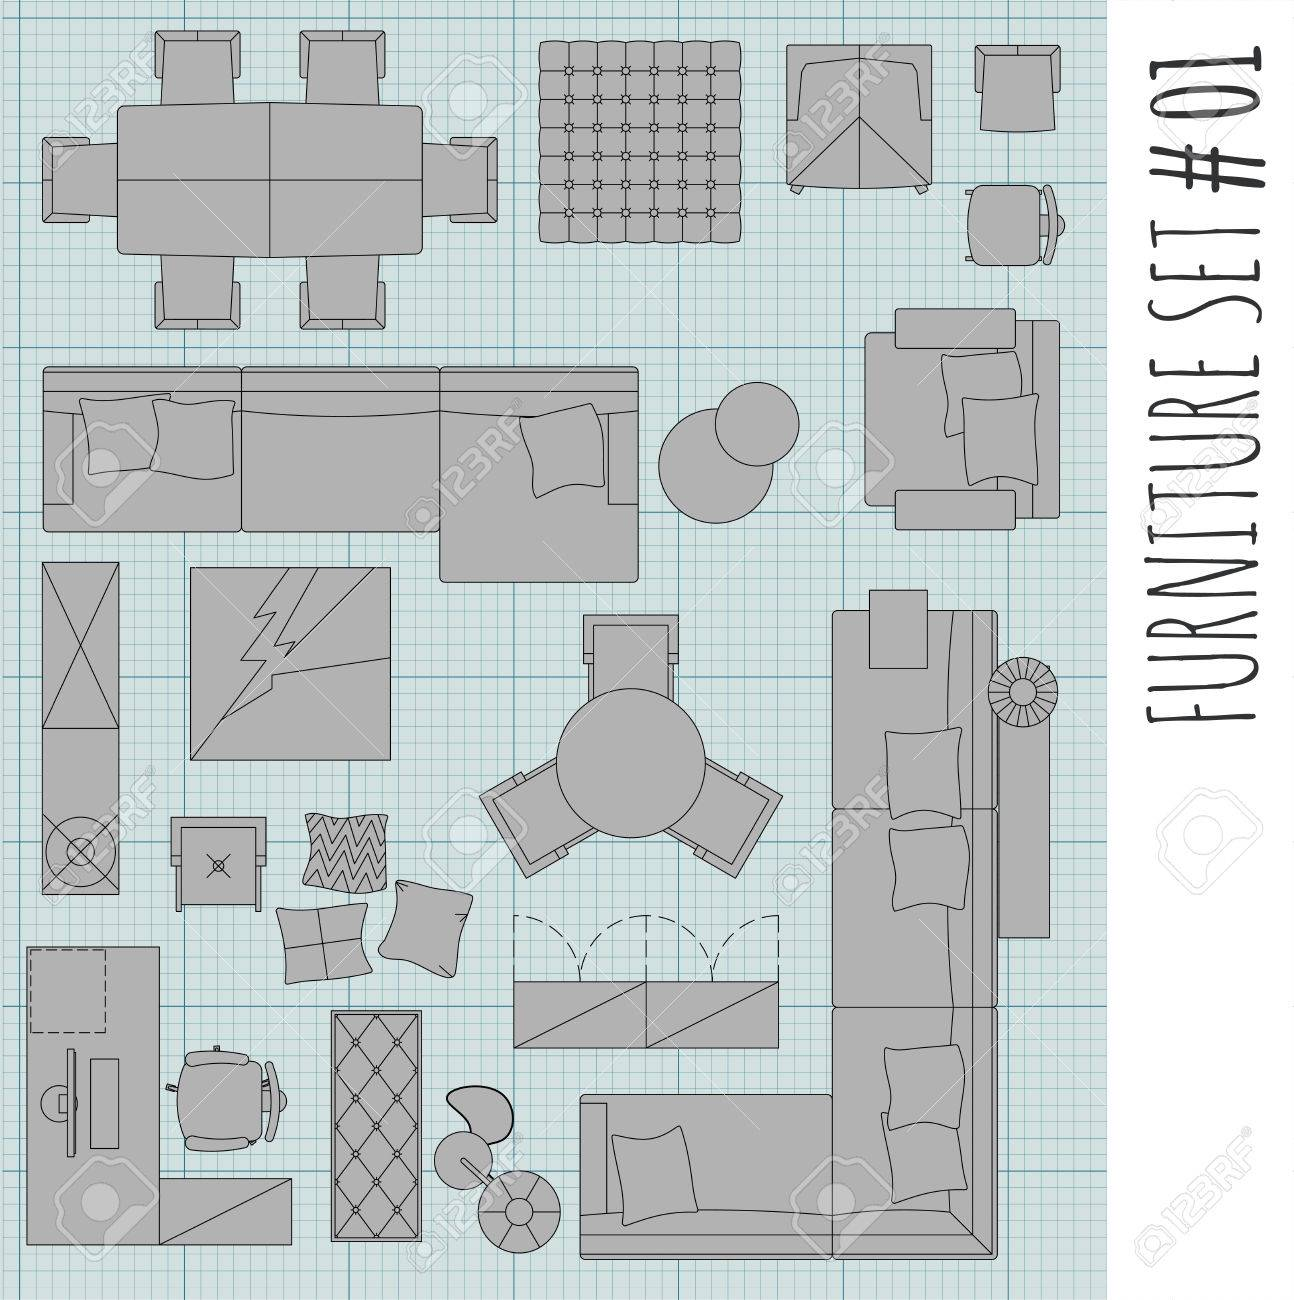 Merveilleux Standard Furniture Symbols Used In Architecture Plans Icons Set, Graphic  Design Elements,home Planning